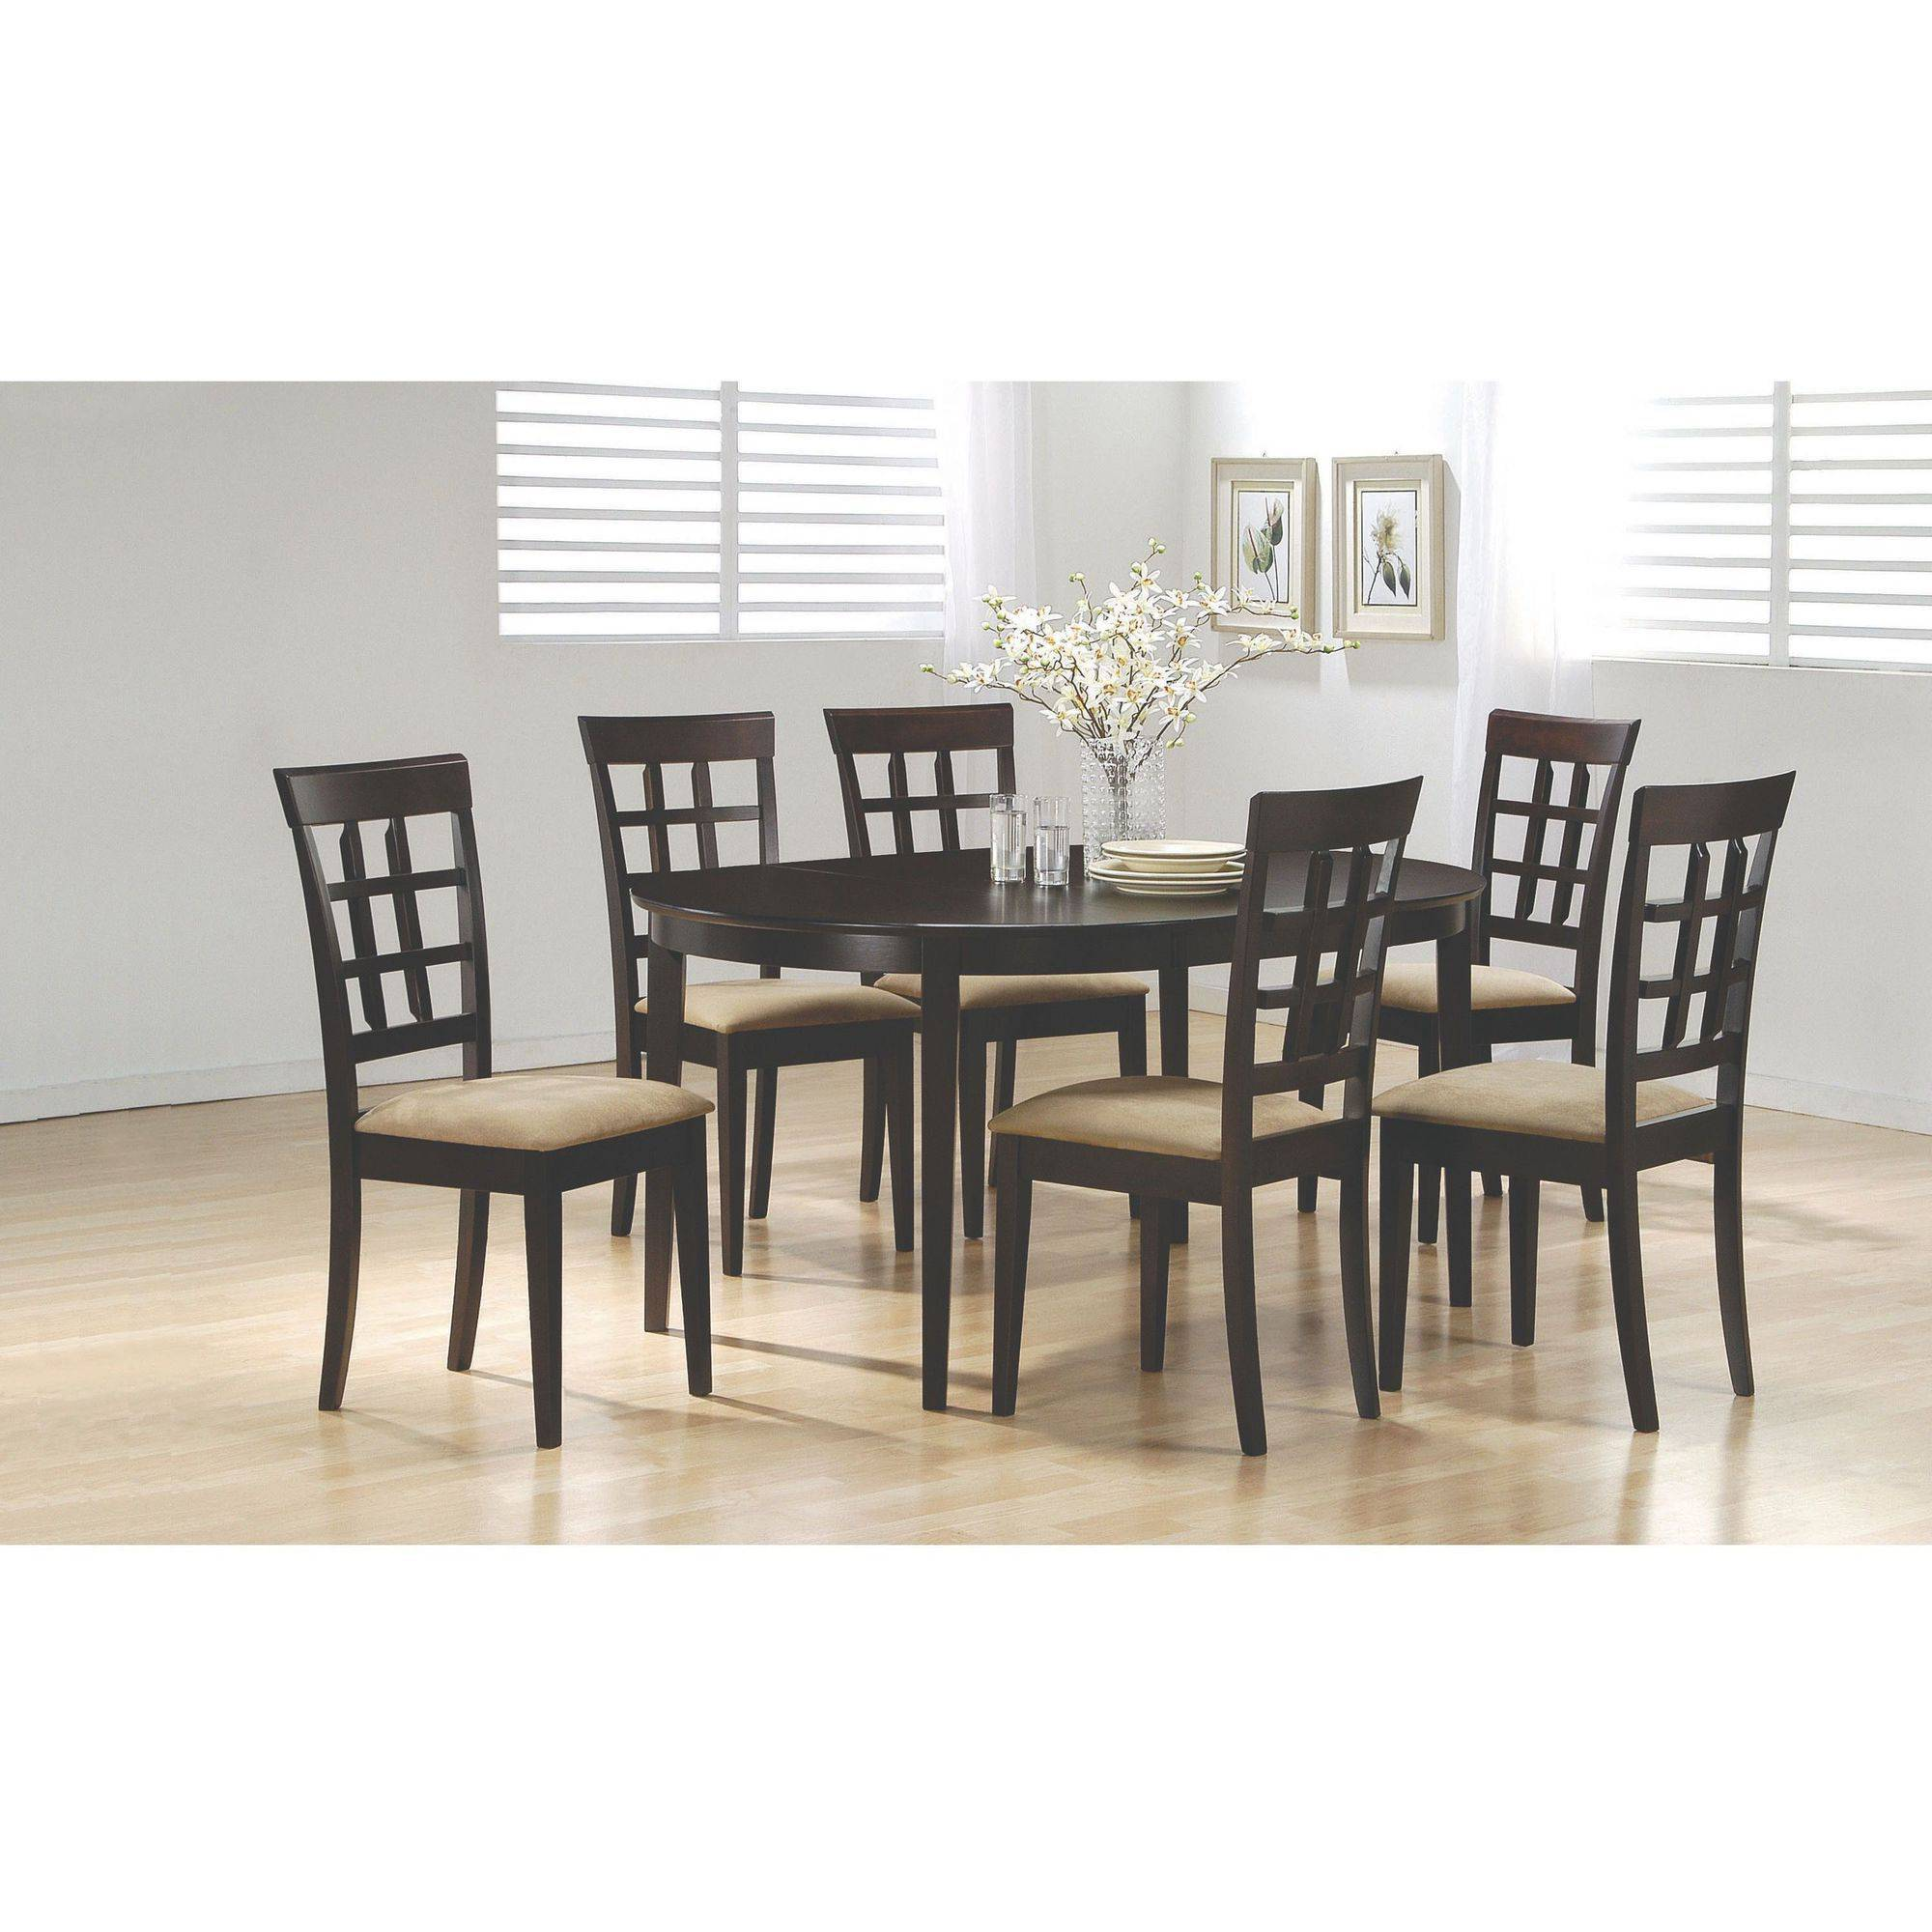 . Coaster Company Gabriel Collection  Dining Table   Walmart com